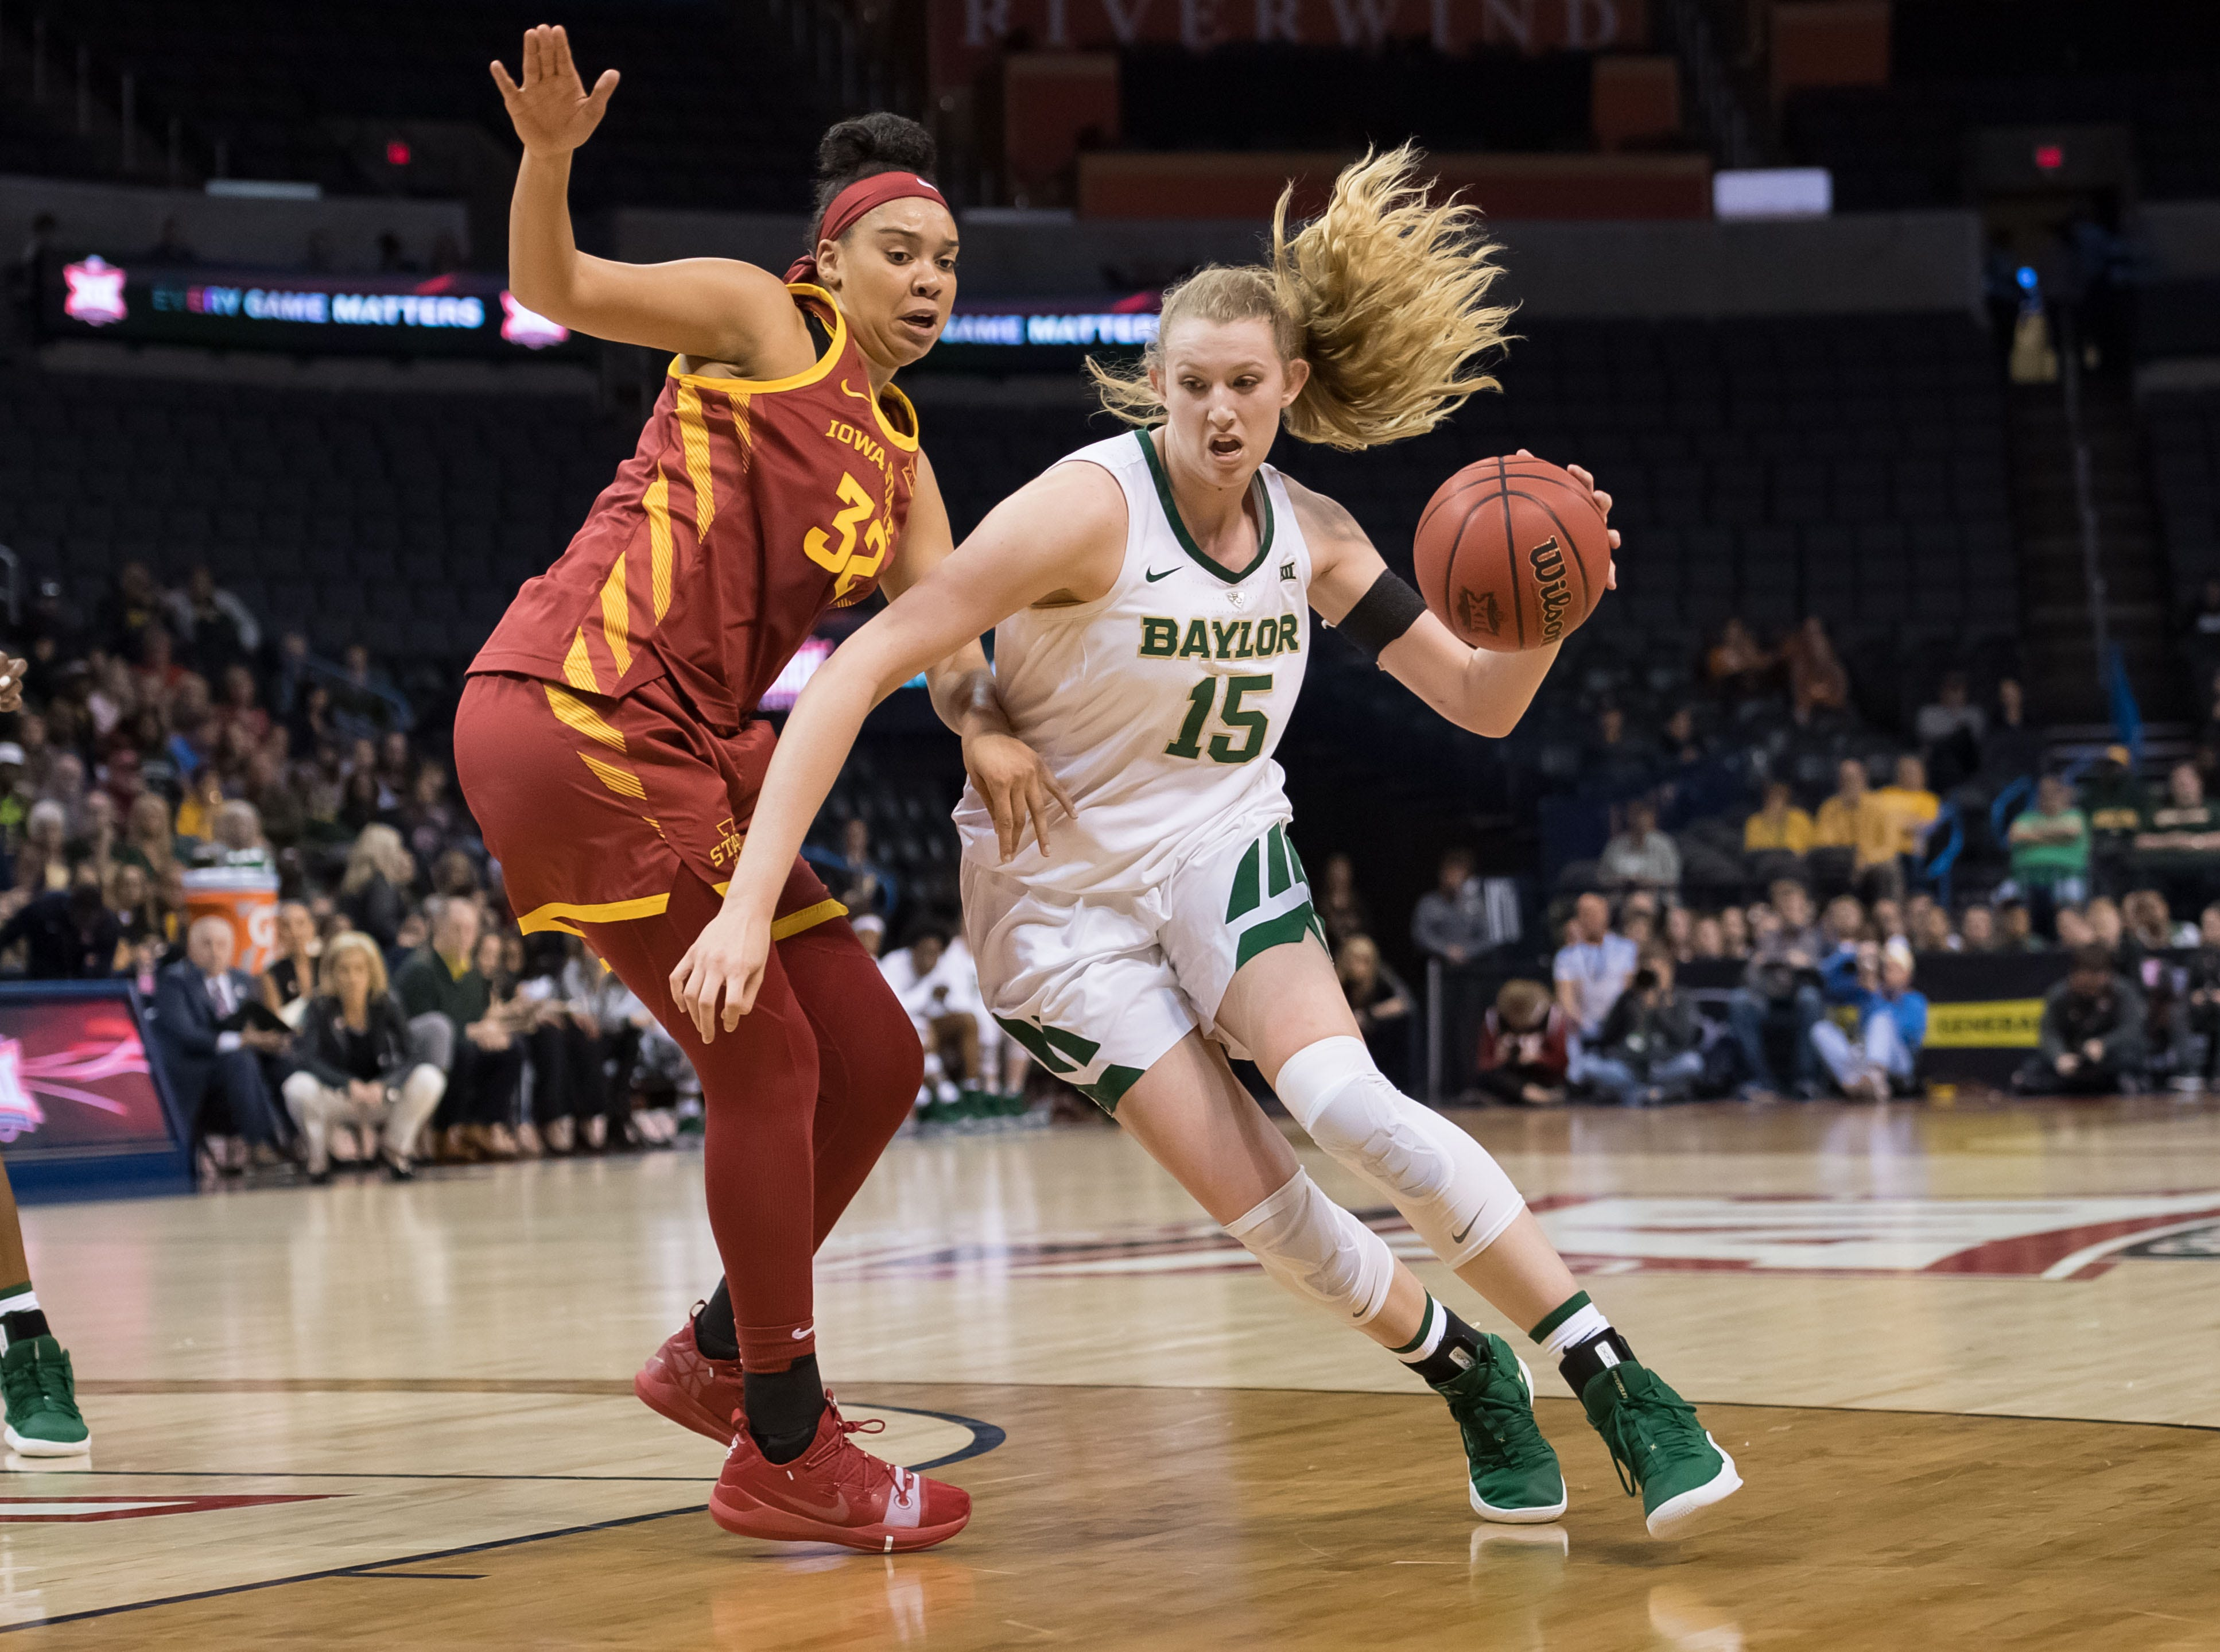 Baylor Lady Bears forward Lauren Cox (15) drives to the basket against Iowa State Cyclones forward Meredith Burkhall (32) during the second quarter in the women's Big 12 Conference Tournament at Chesapeake Energy Arena.